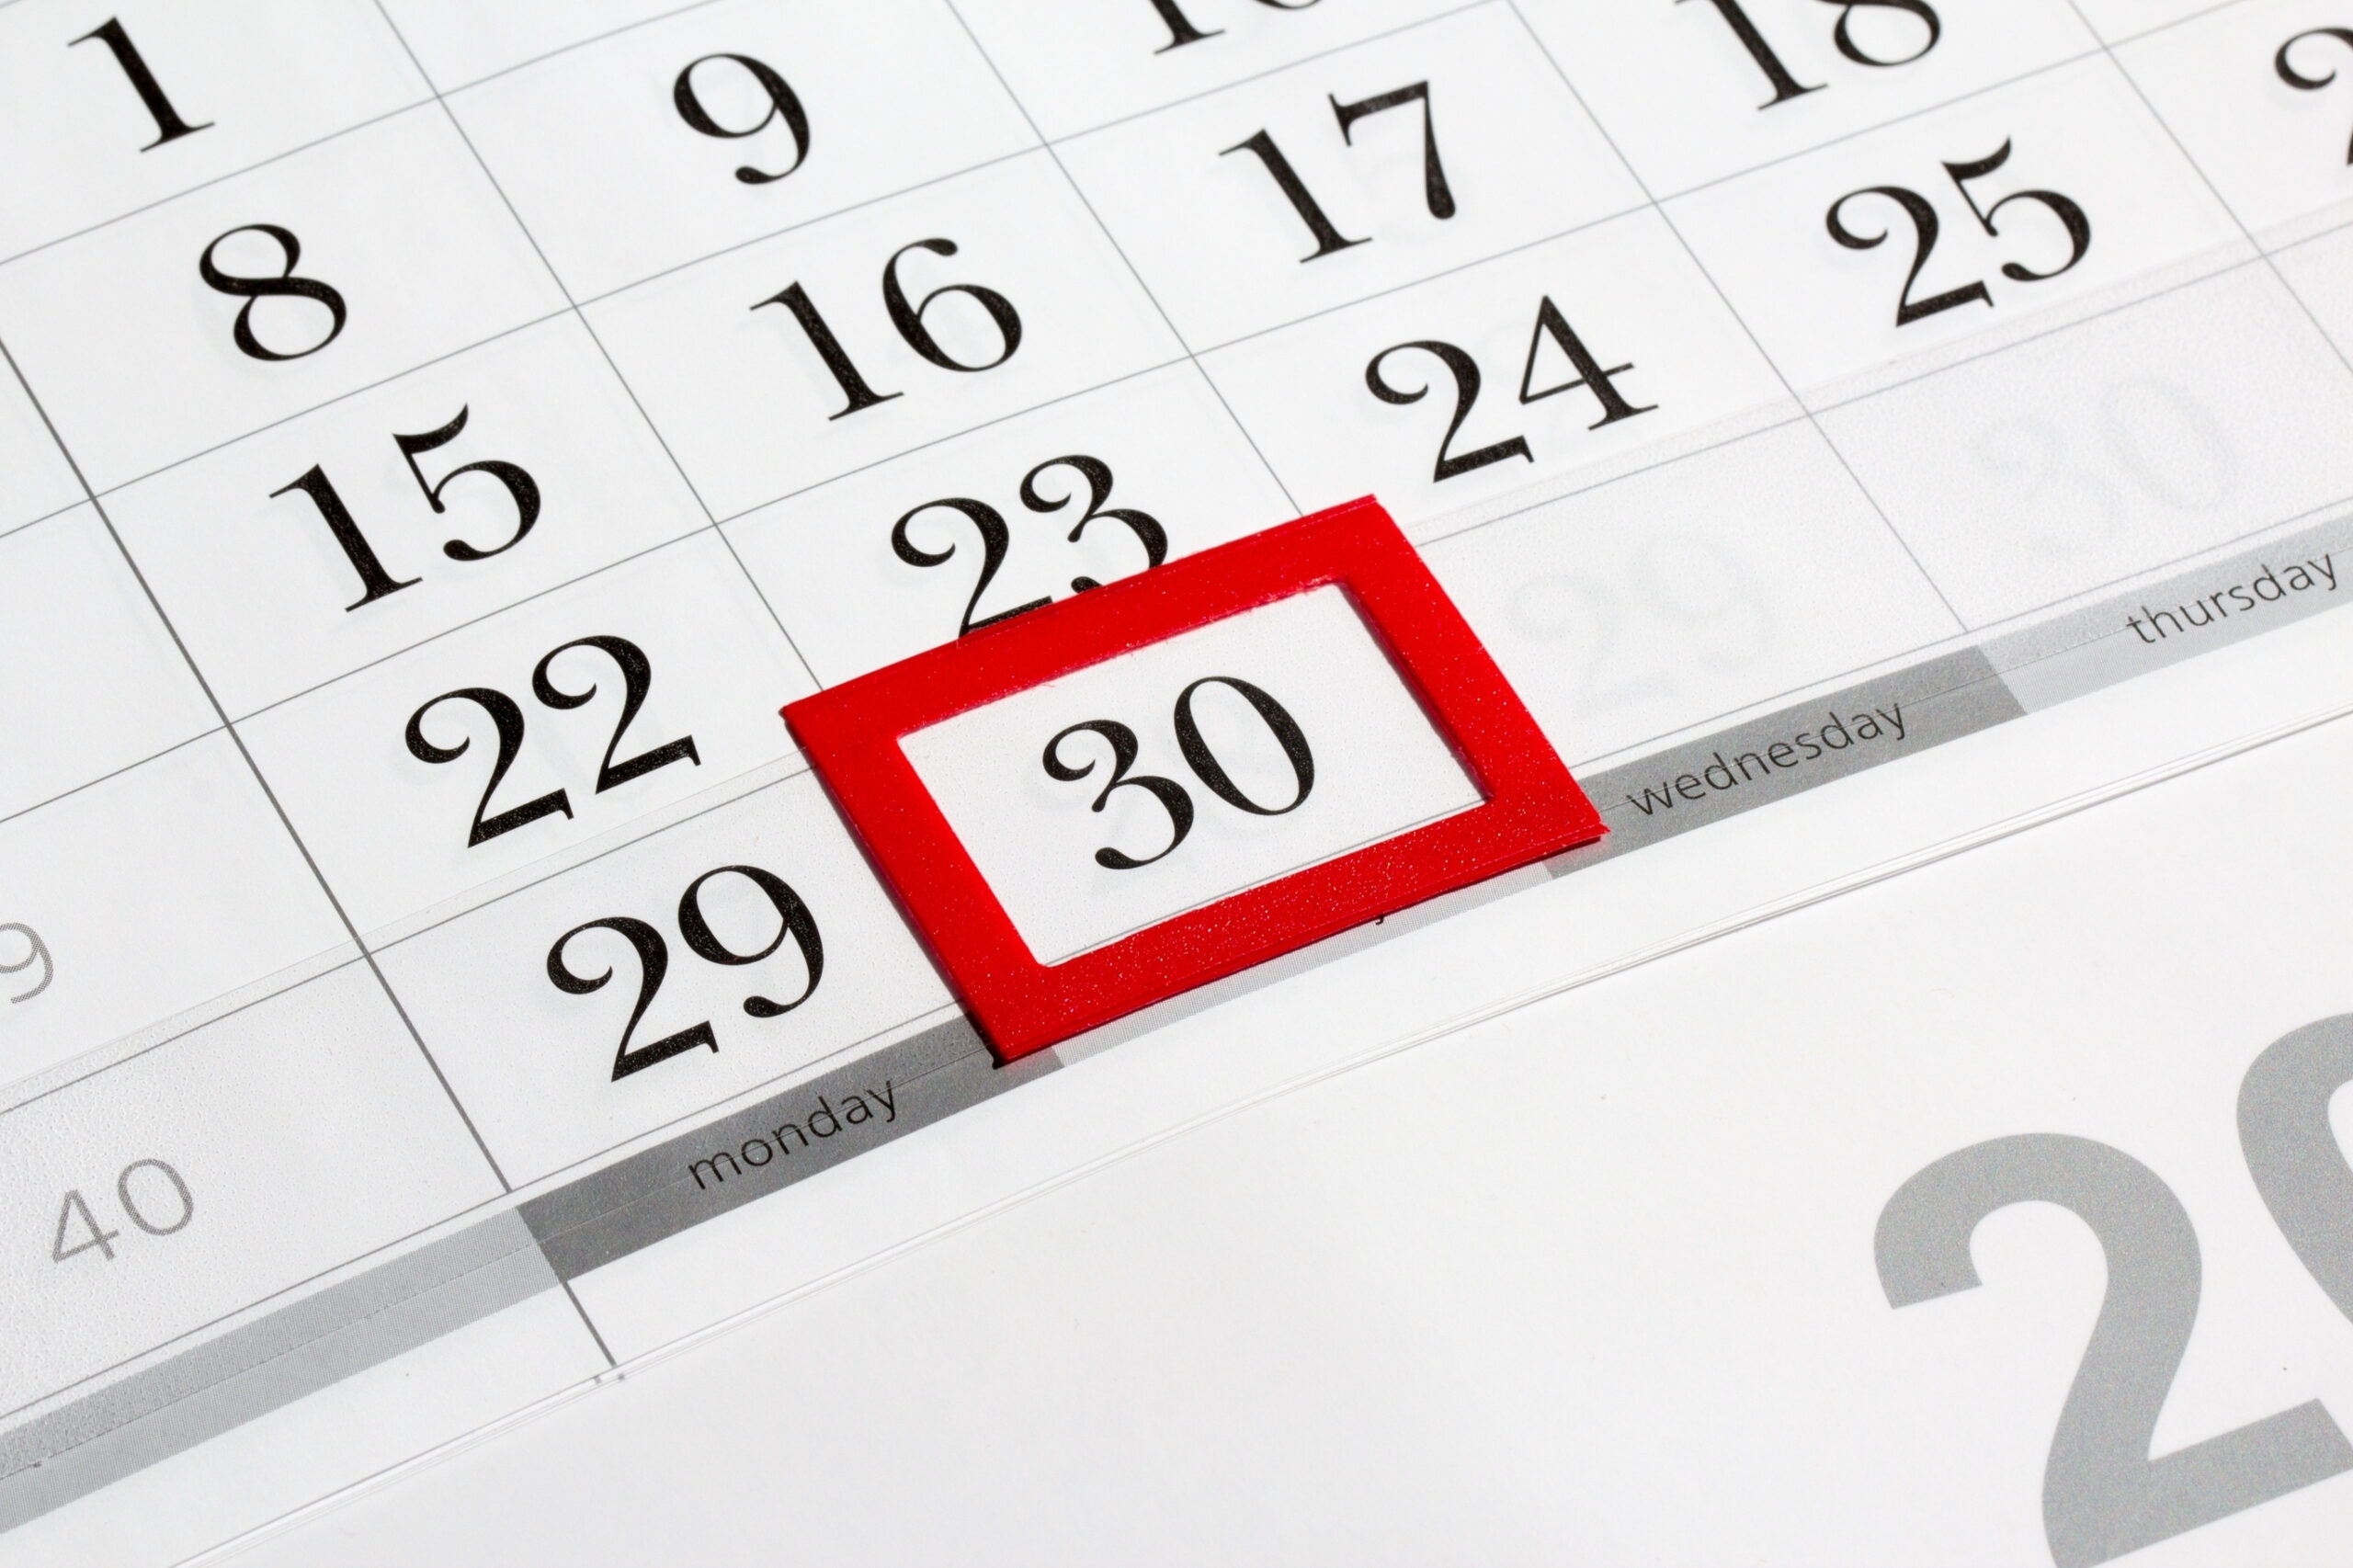 Countdown Without Weekends | Calendar For Planning with regard to Countdown Minus Weekends